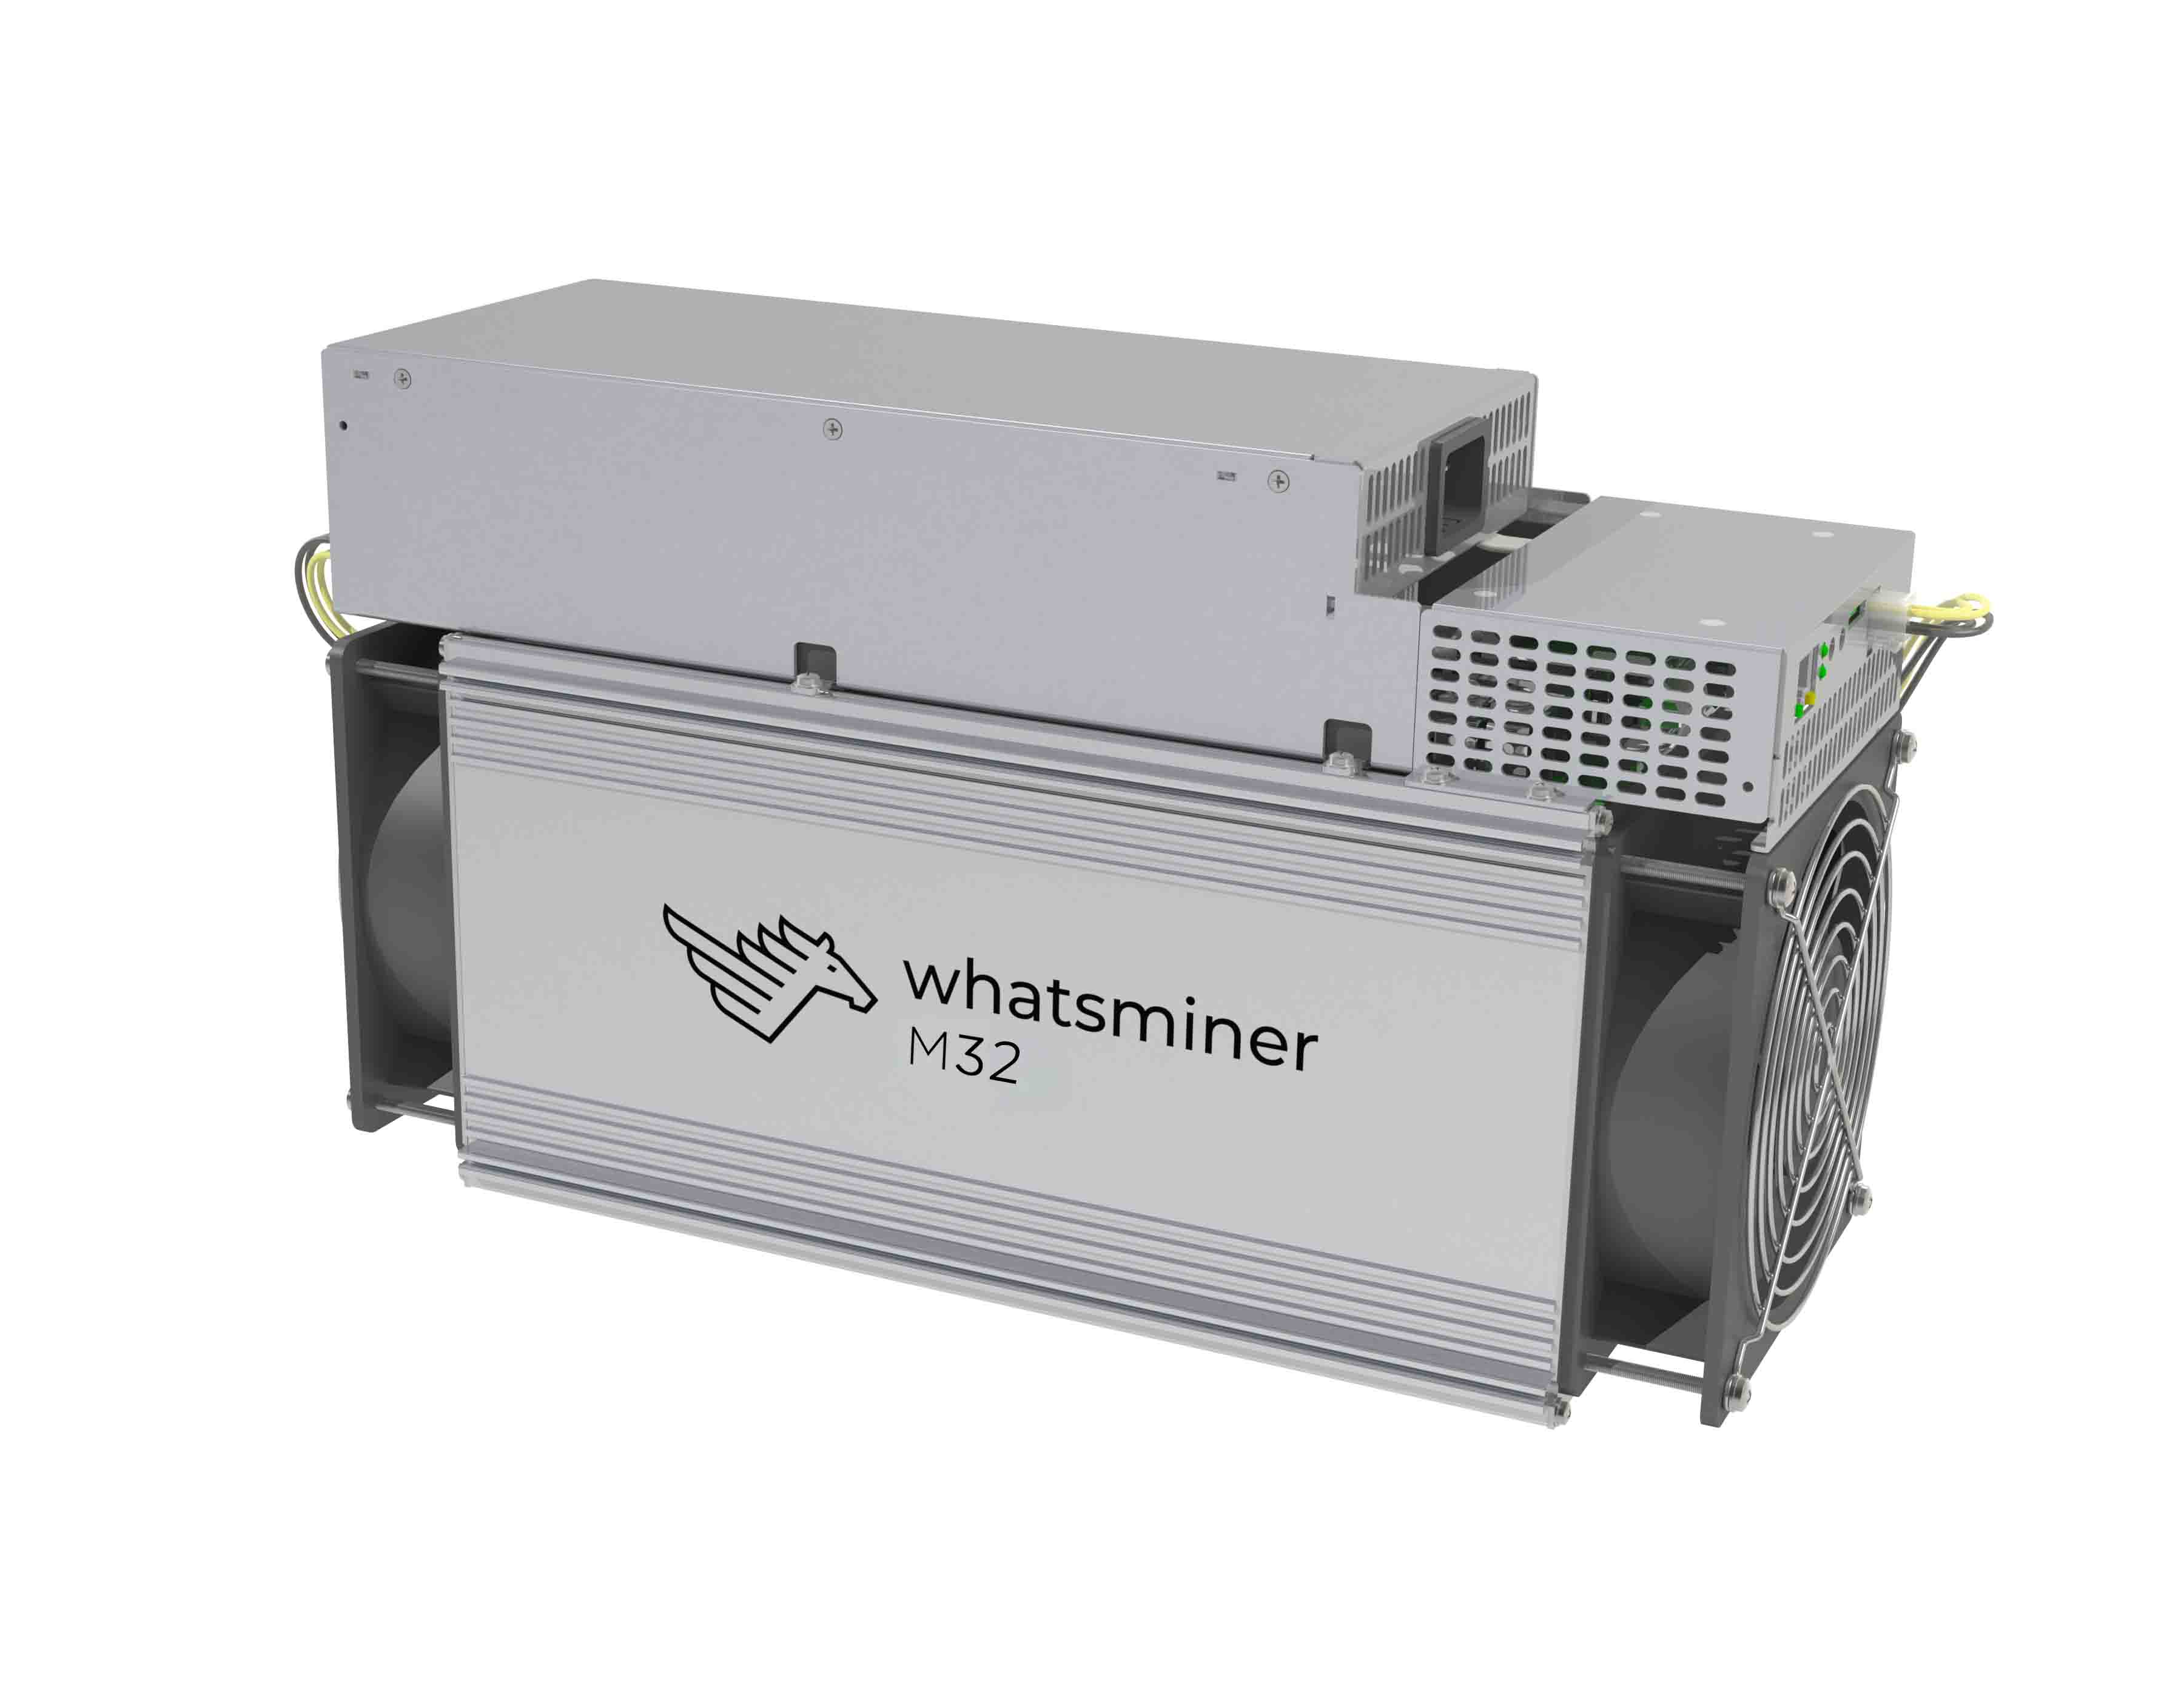 ASIC Whatsminer M32 66 Th/s